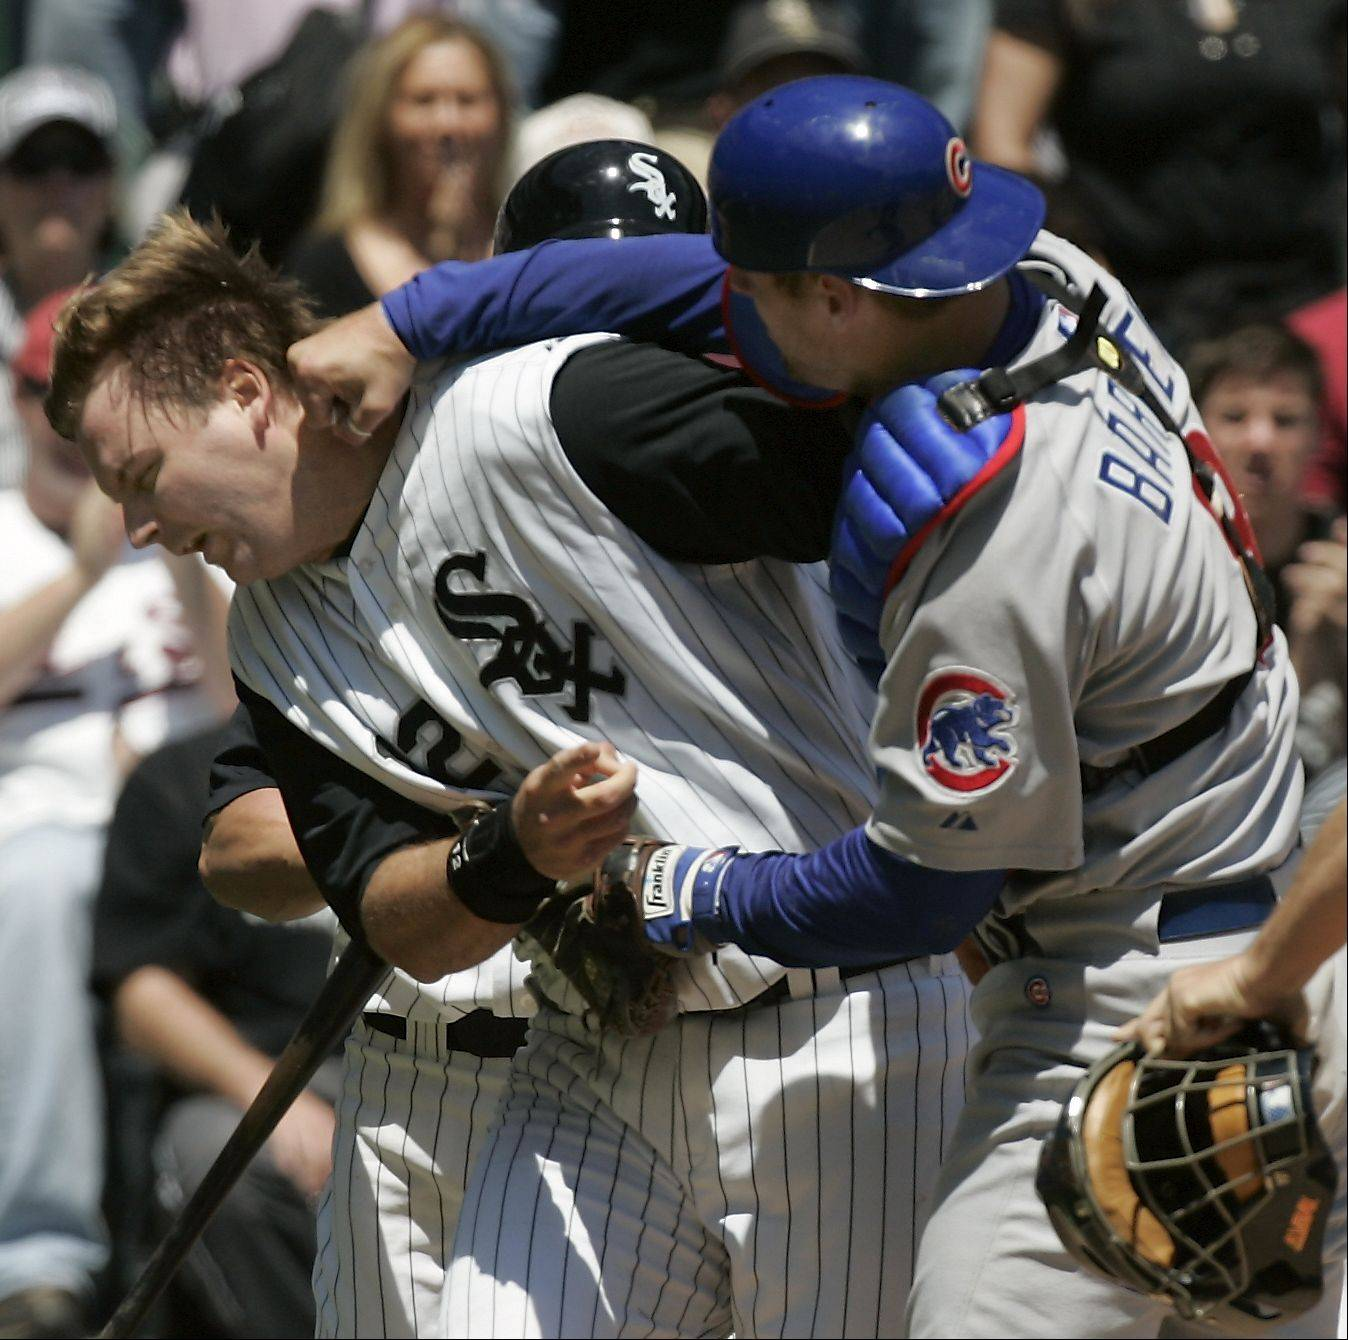 Sox A.J. Pierzynski gets punched by Cubs Catcher Michael Barrett in the 2nd inning, Game Two Chicago White Sox Vs Chicago Cubs at U.S. Cellular Field in Chicago. May 20, 2006.